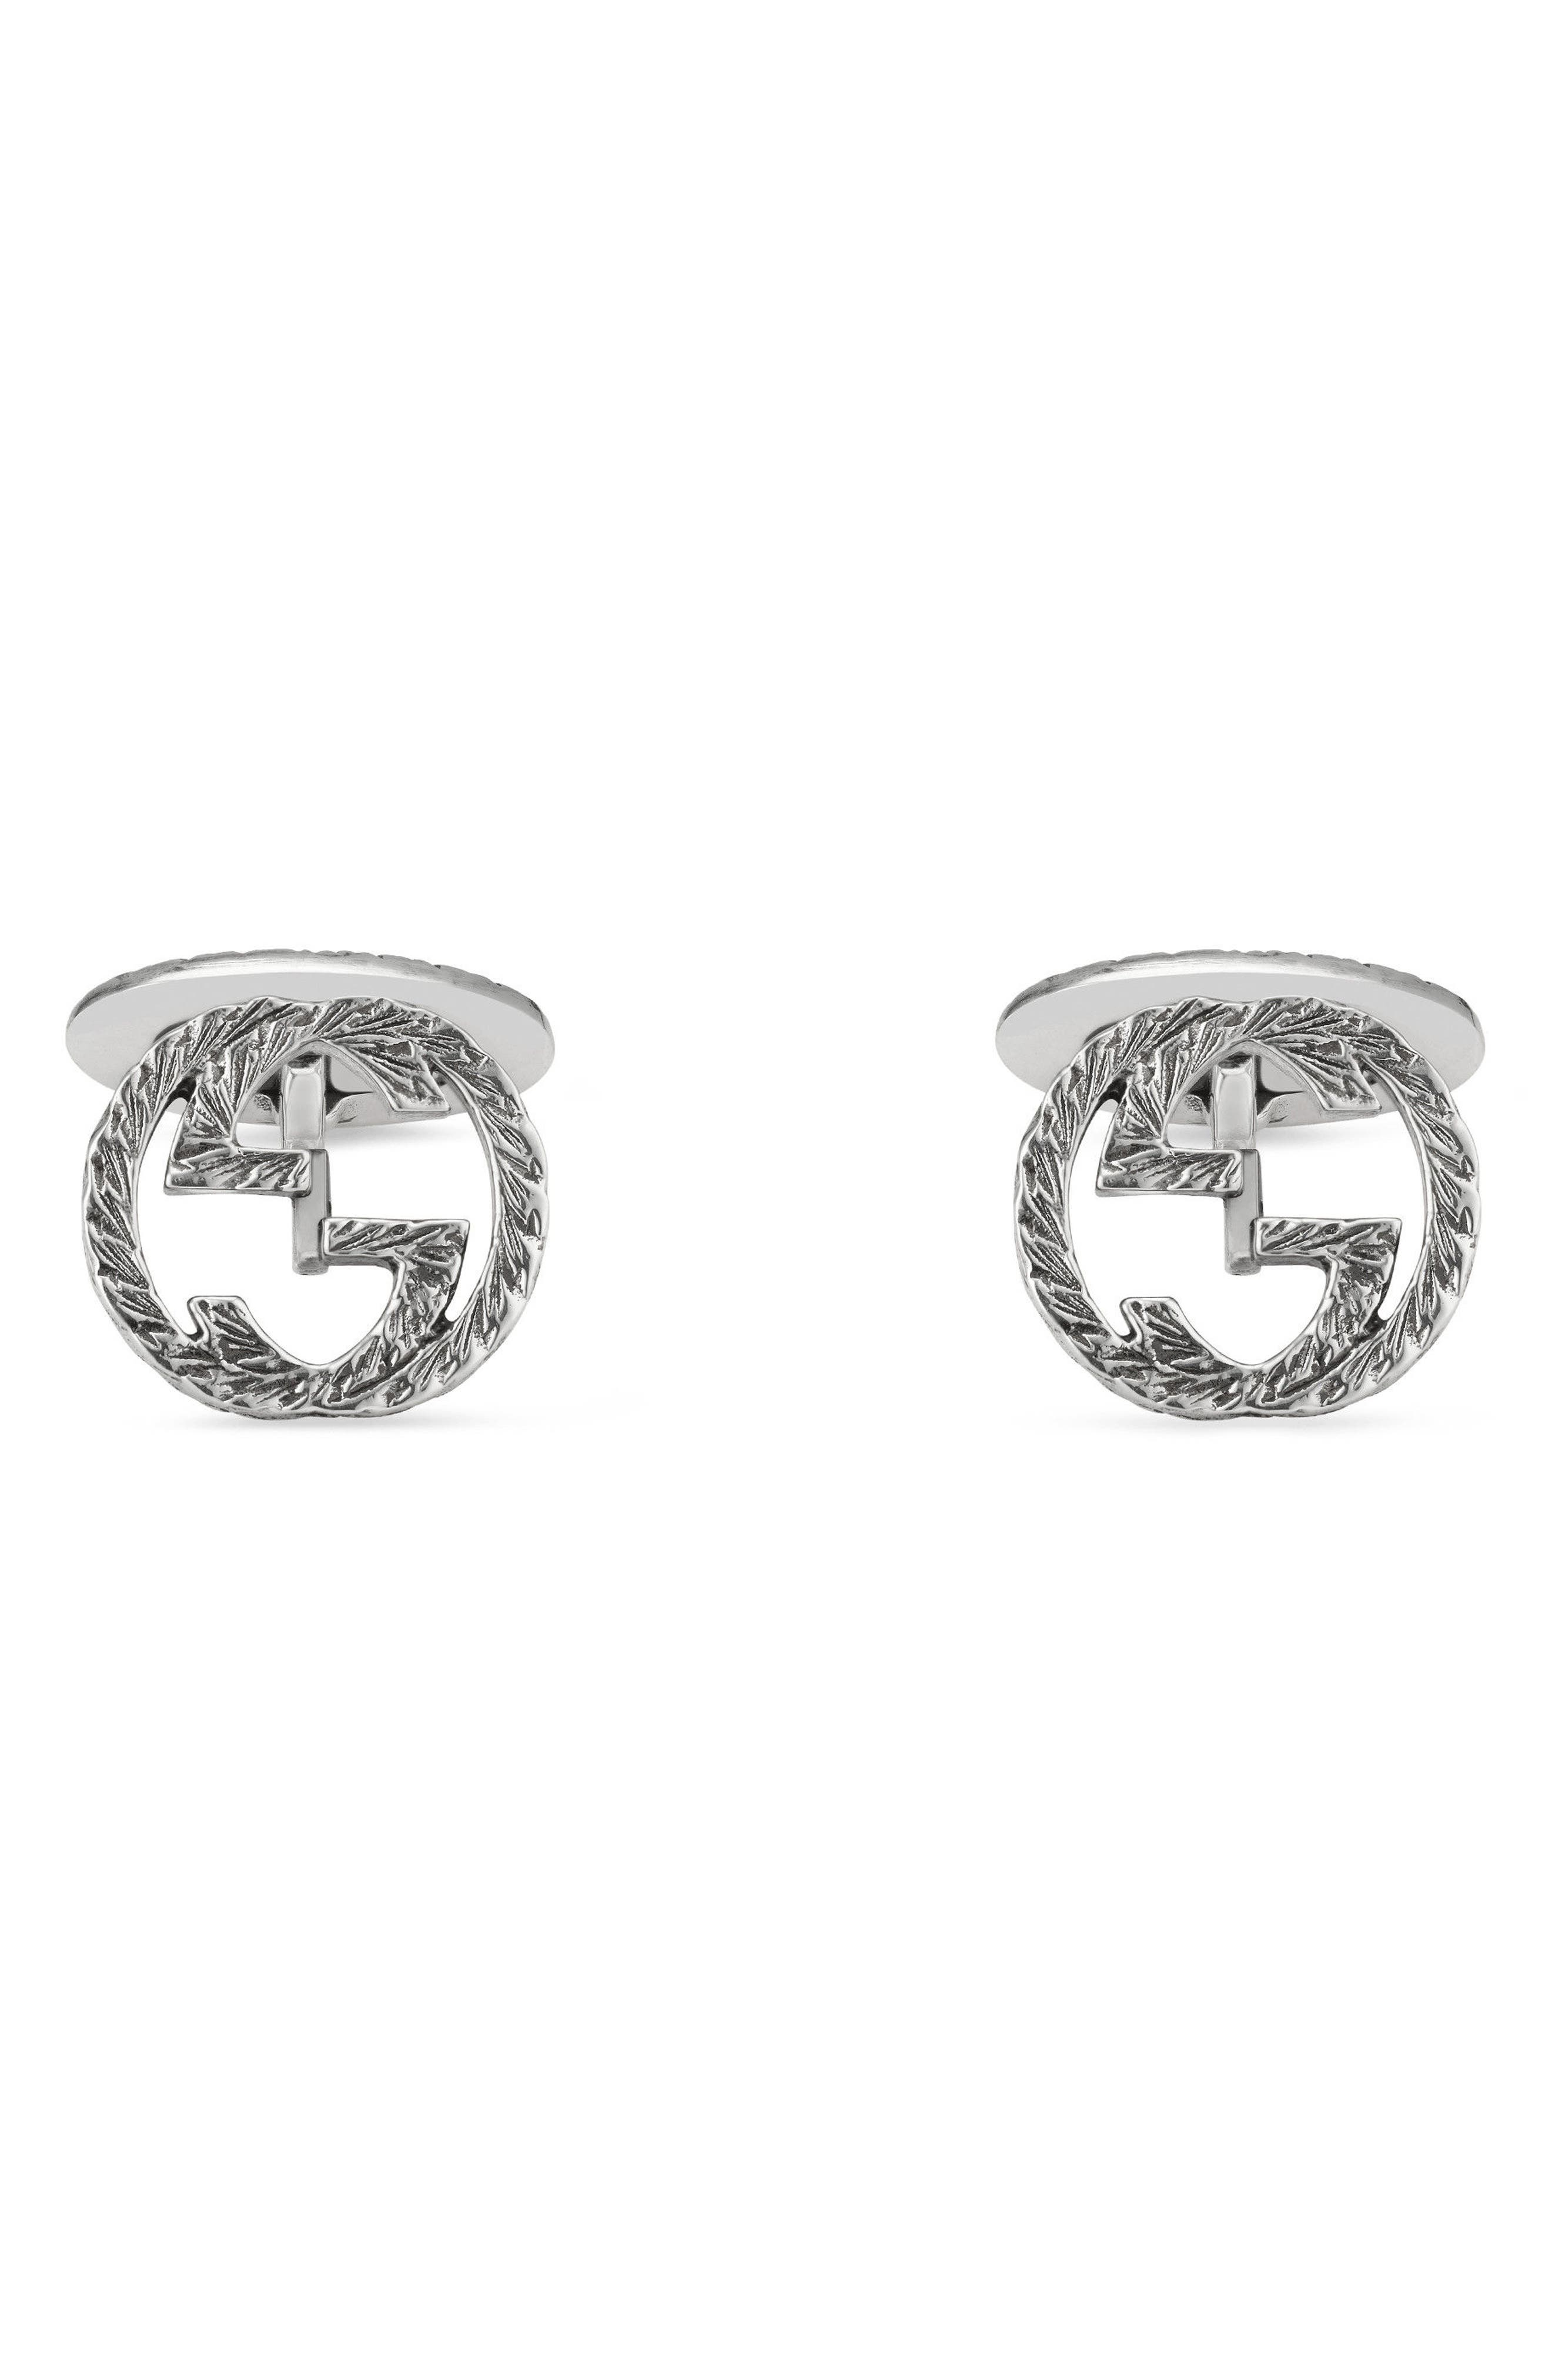 Gucci Interlocking G Cuff Links